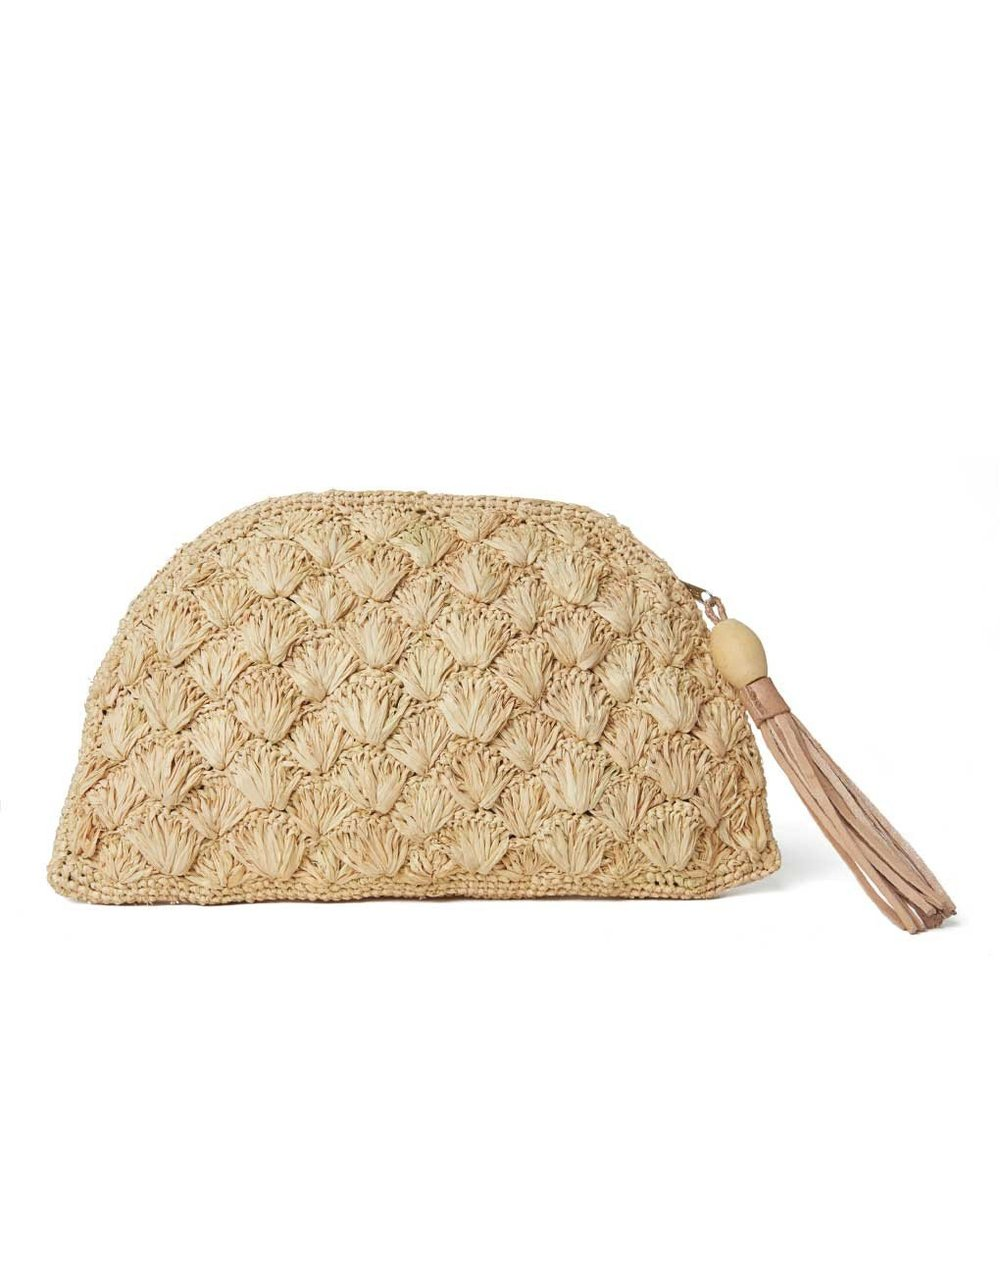 THE LITTLE MARKET   Deep Sea Clutch - Sand